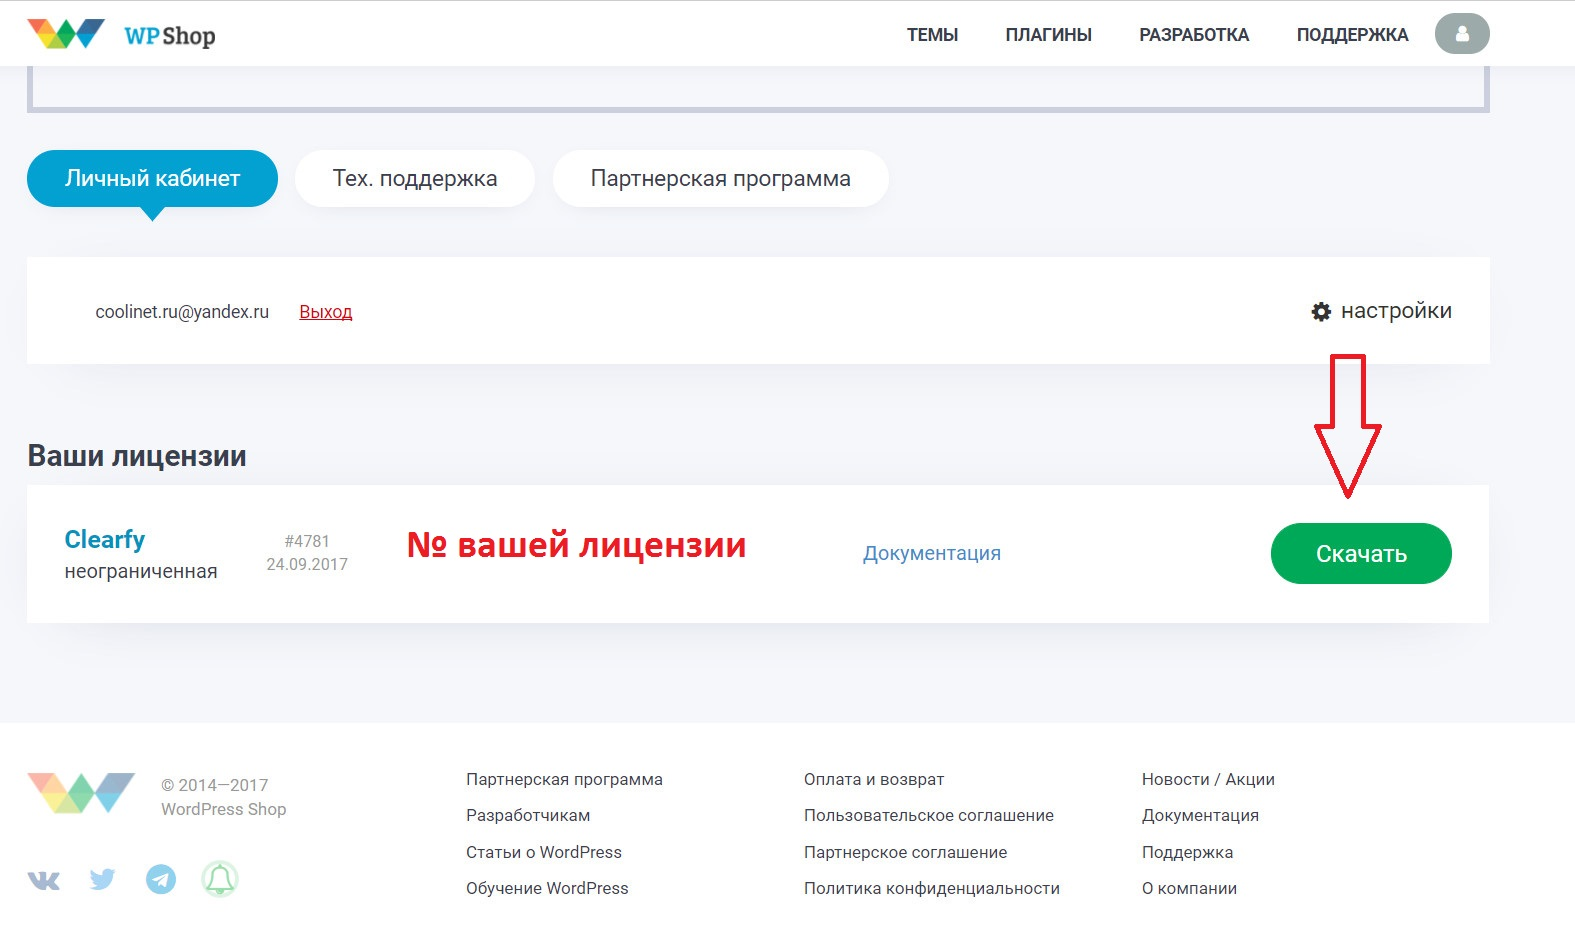 Clearfy Proю